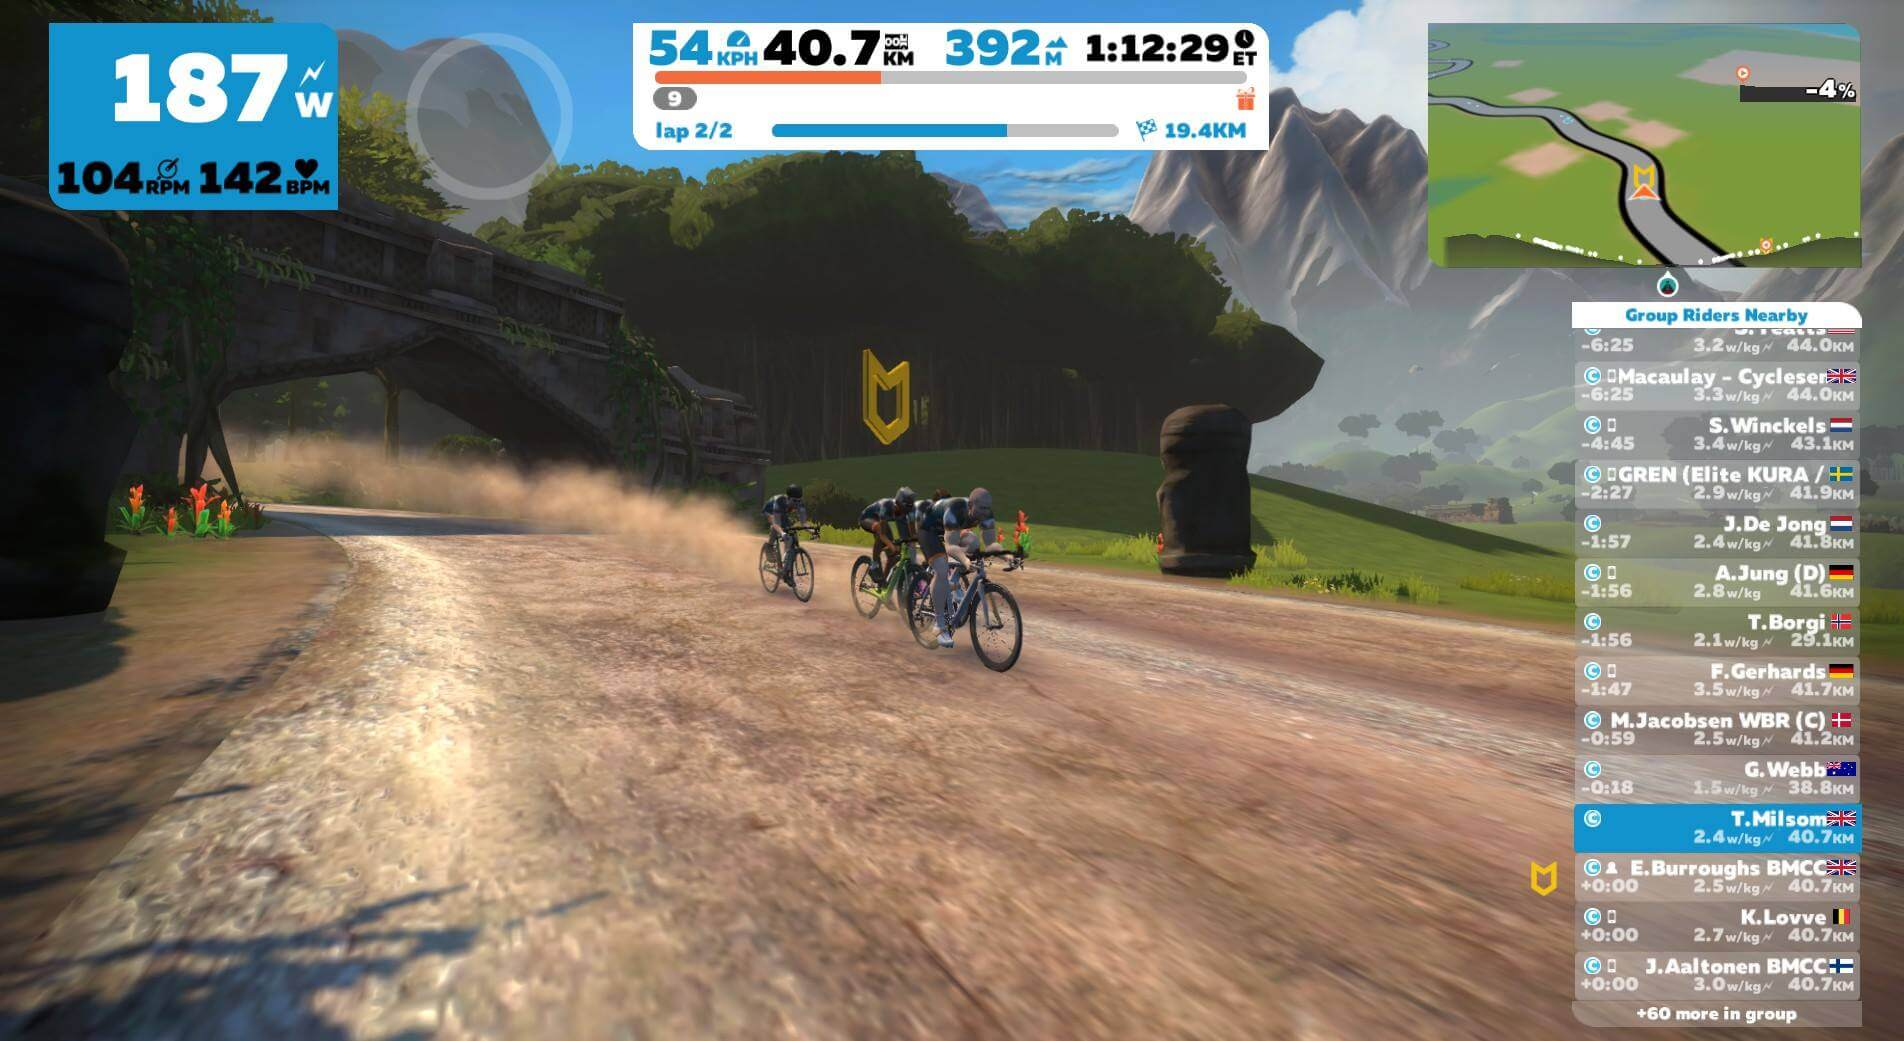 BMCC Club rides on Zwift